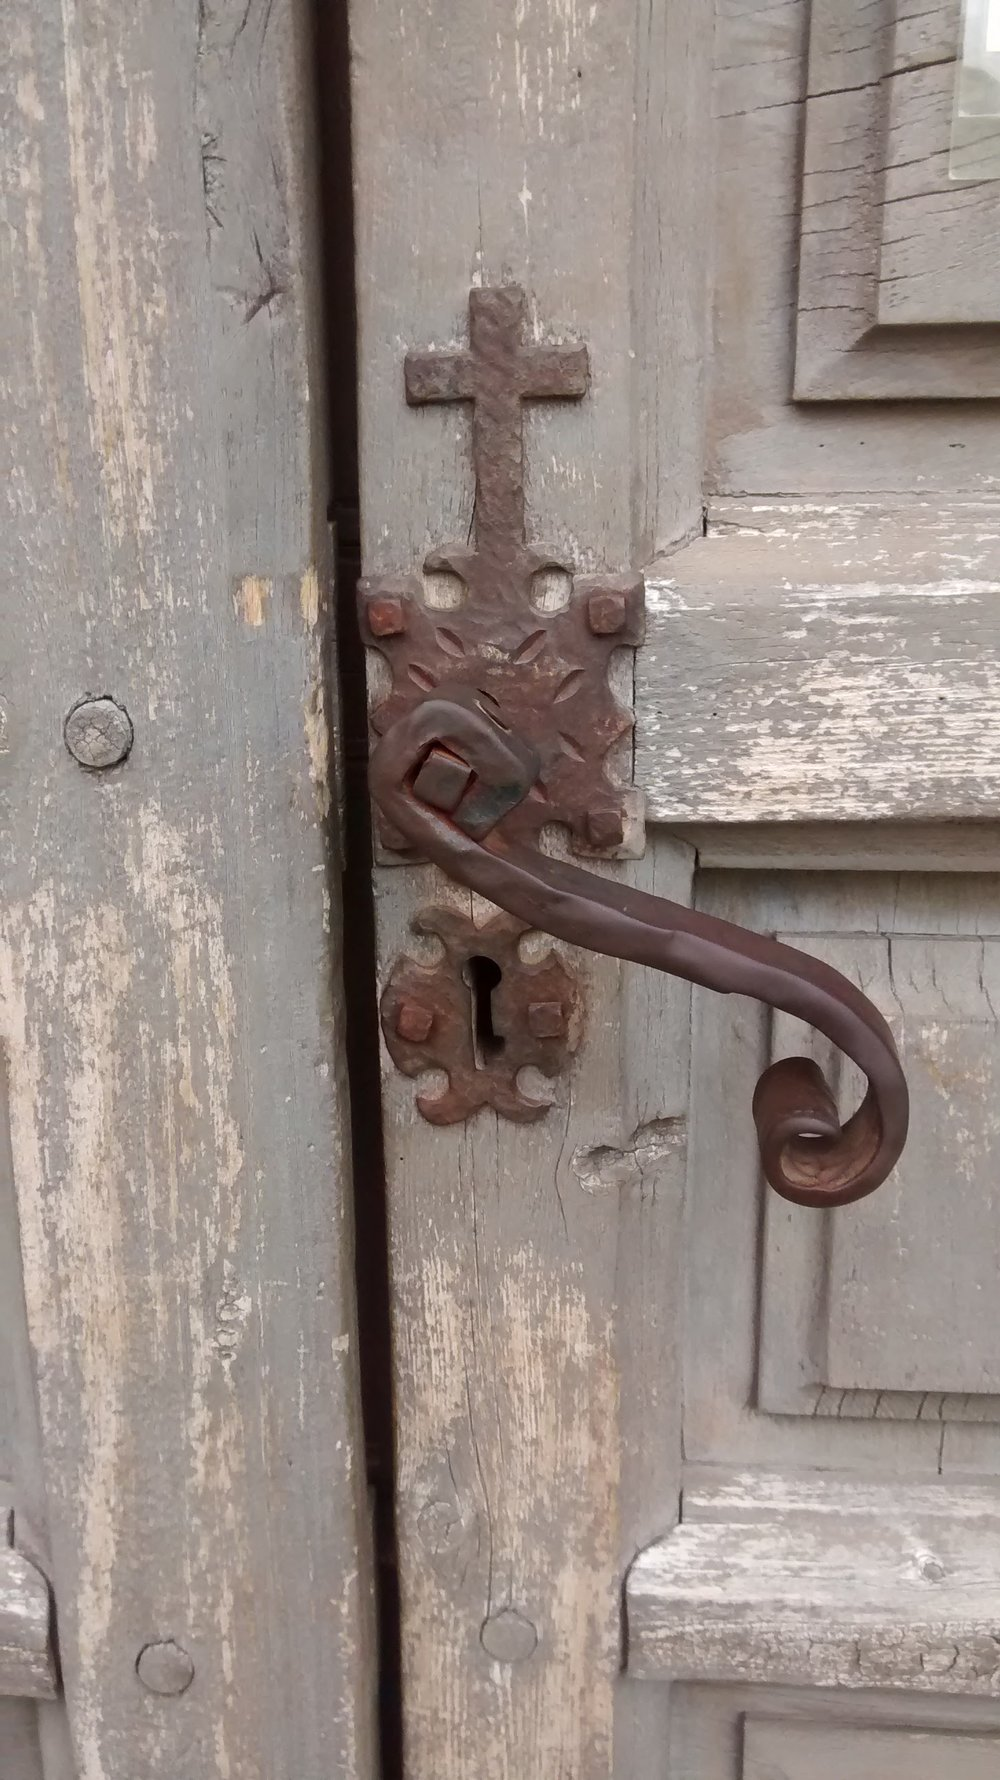 Church door, Mission Trail, San Antonio, TX (photo: me and my cell phone)